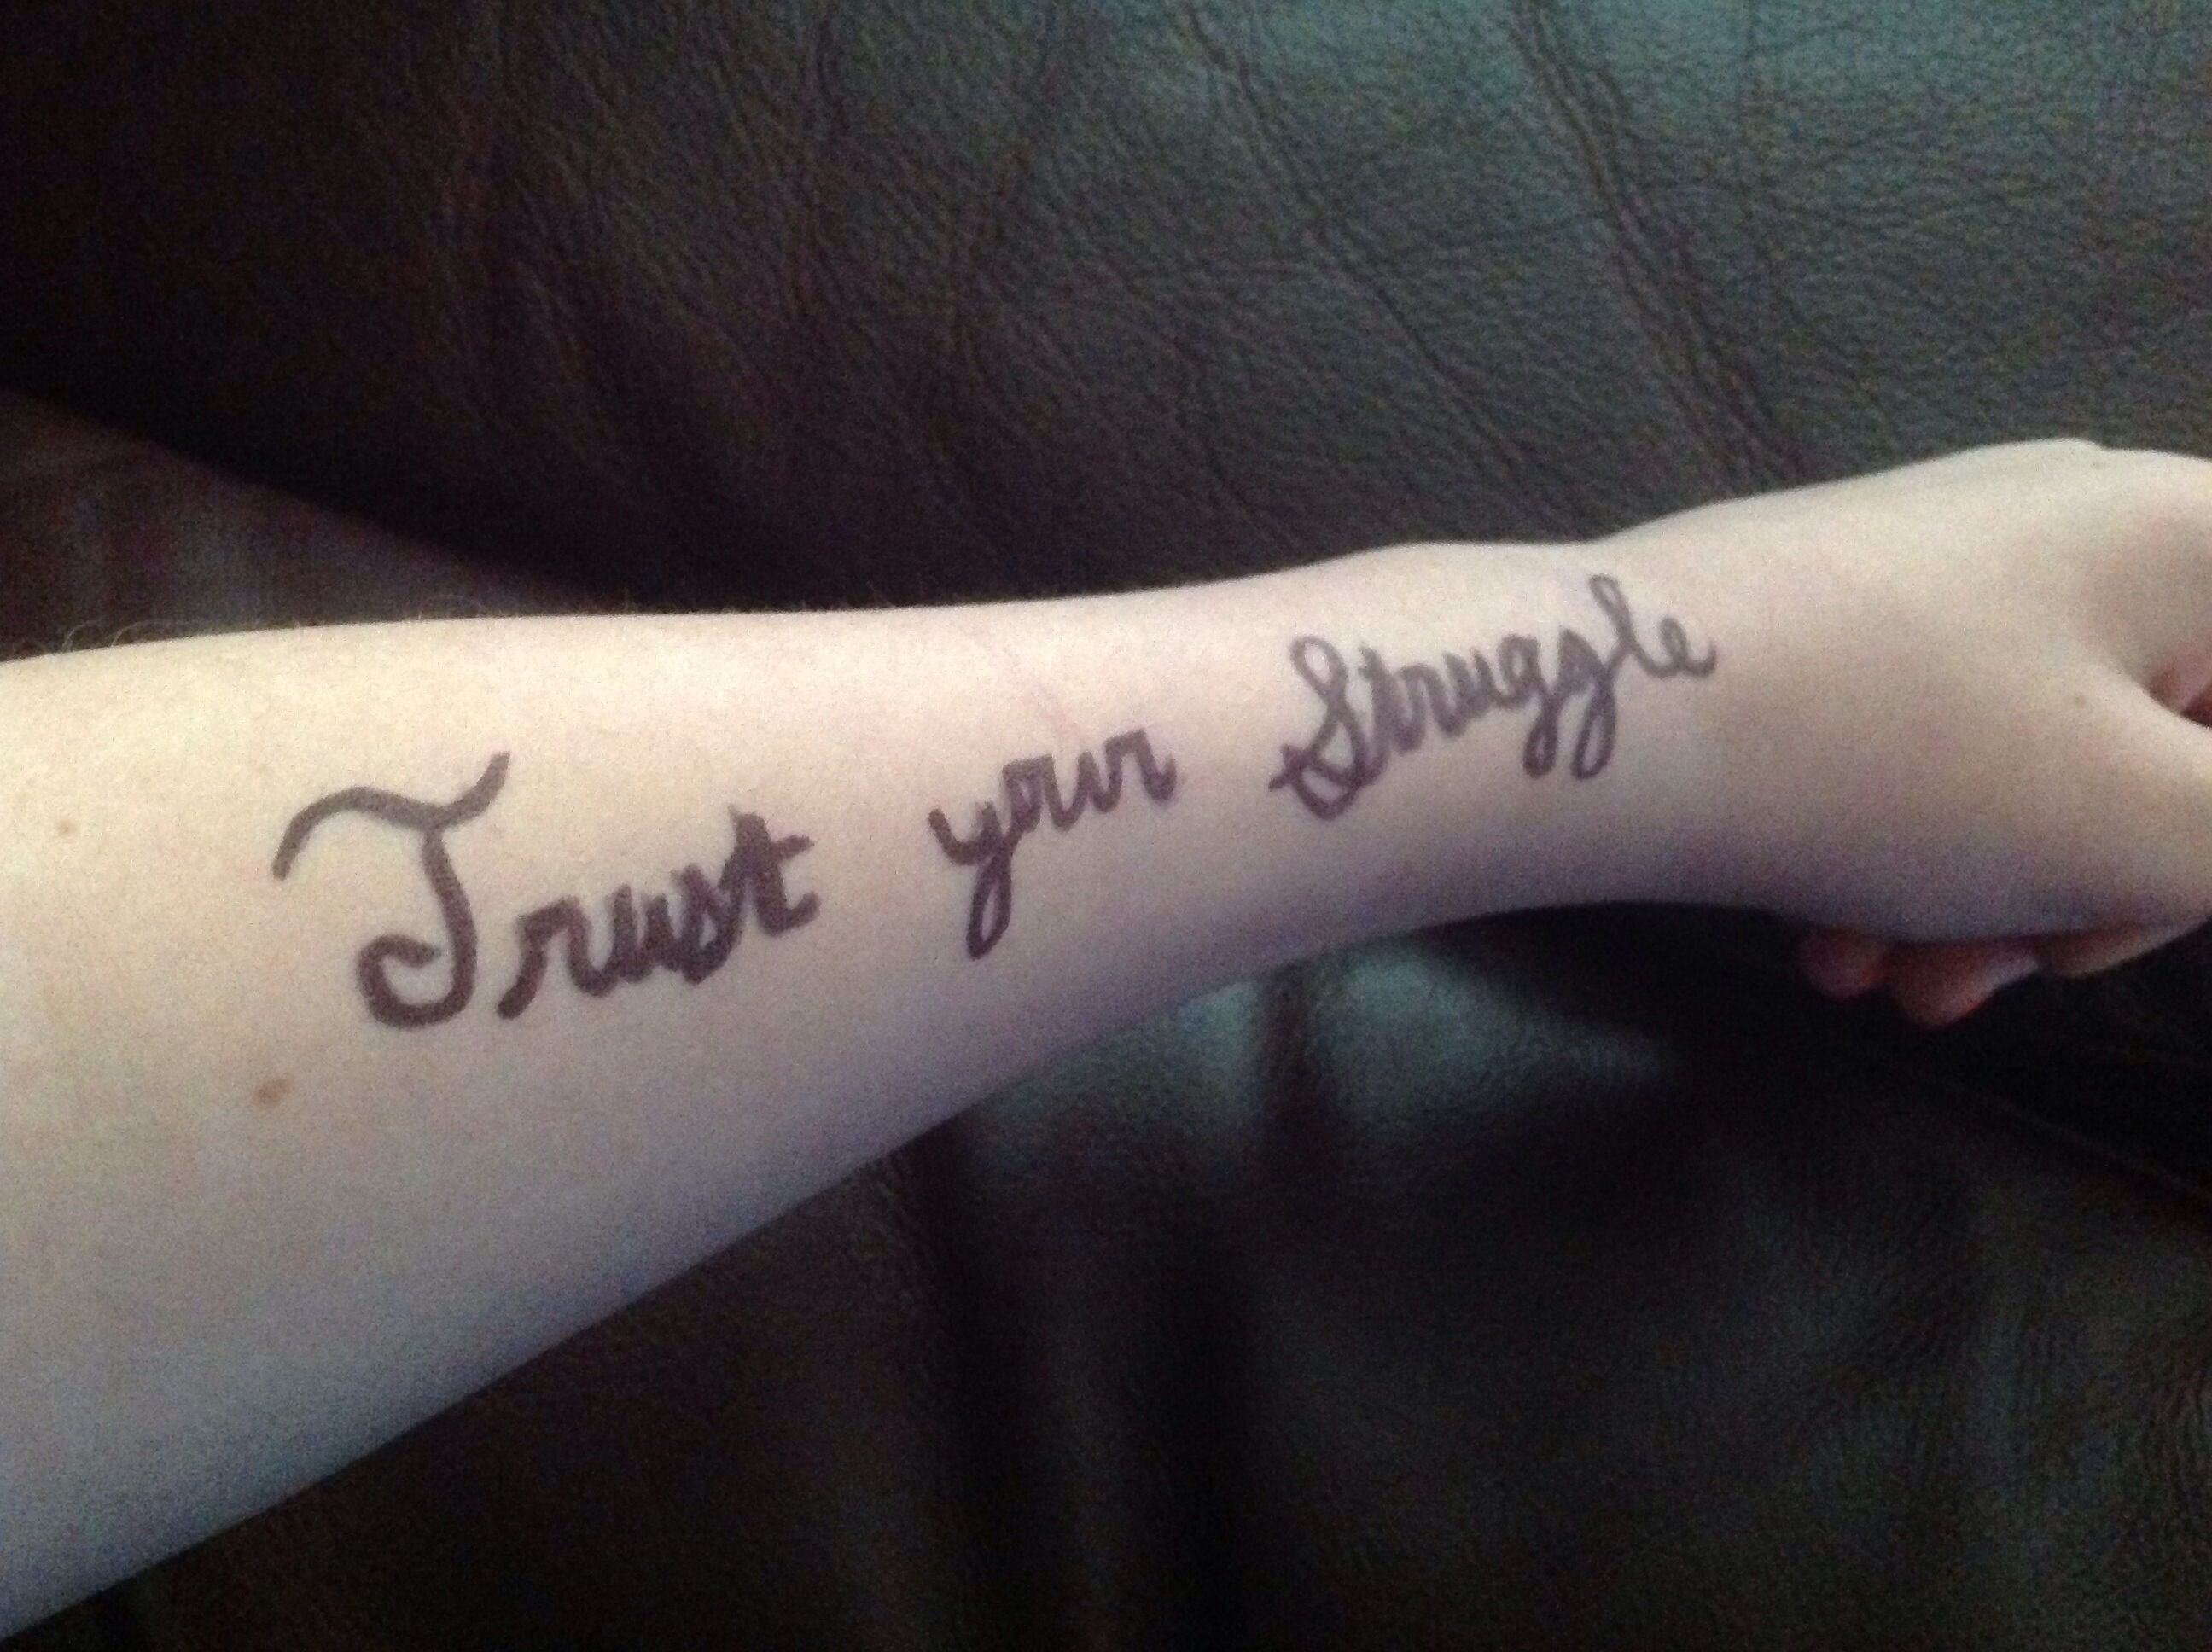 Iggy Azalea Has A Tattoo Like This I Wrote It On My Arm I Find It Very Moving She Is My Role Model And I Love Her Trus Tattoo Quotes Tattoos